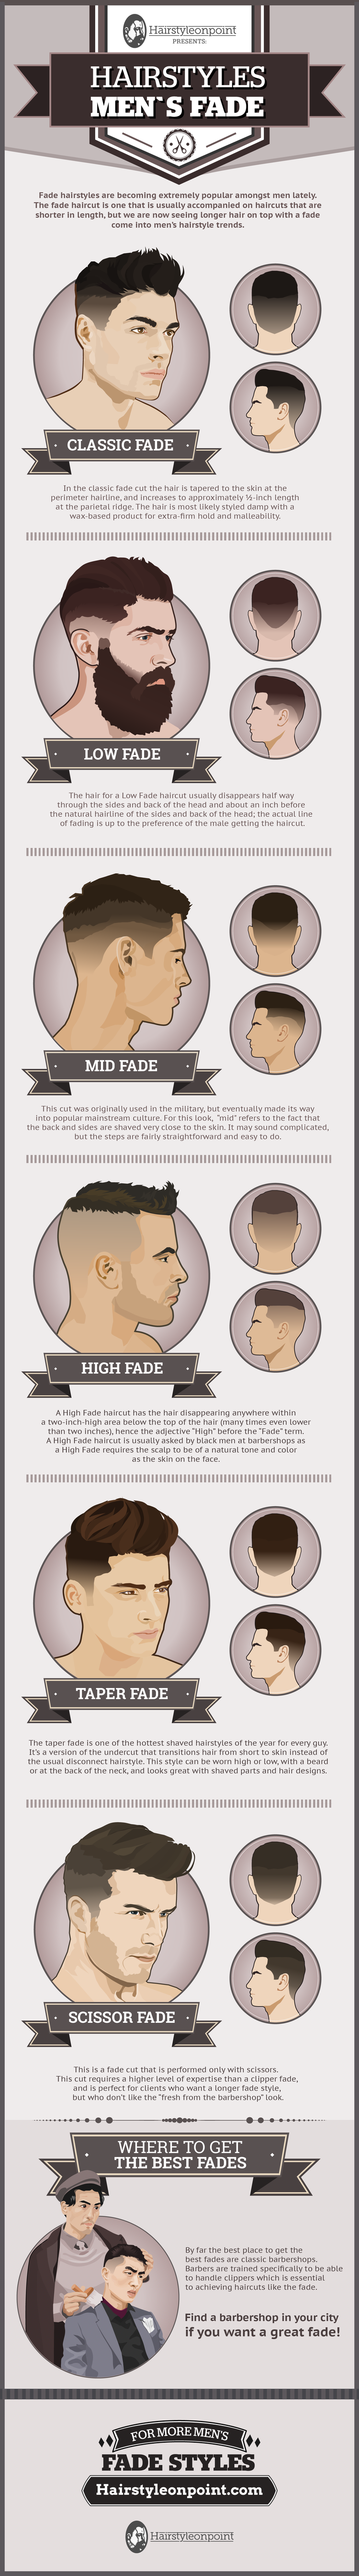 Coolest Fade Hairstyles Haircuts For Men Beard Pinterest